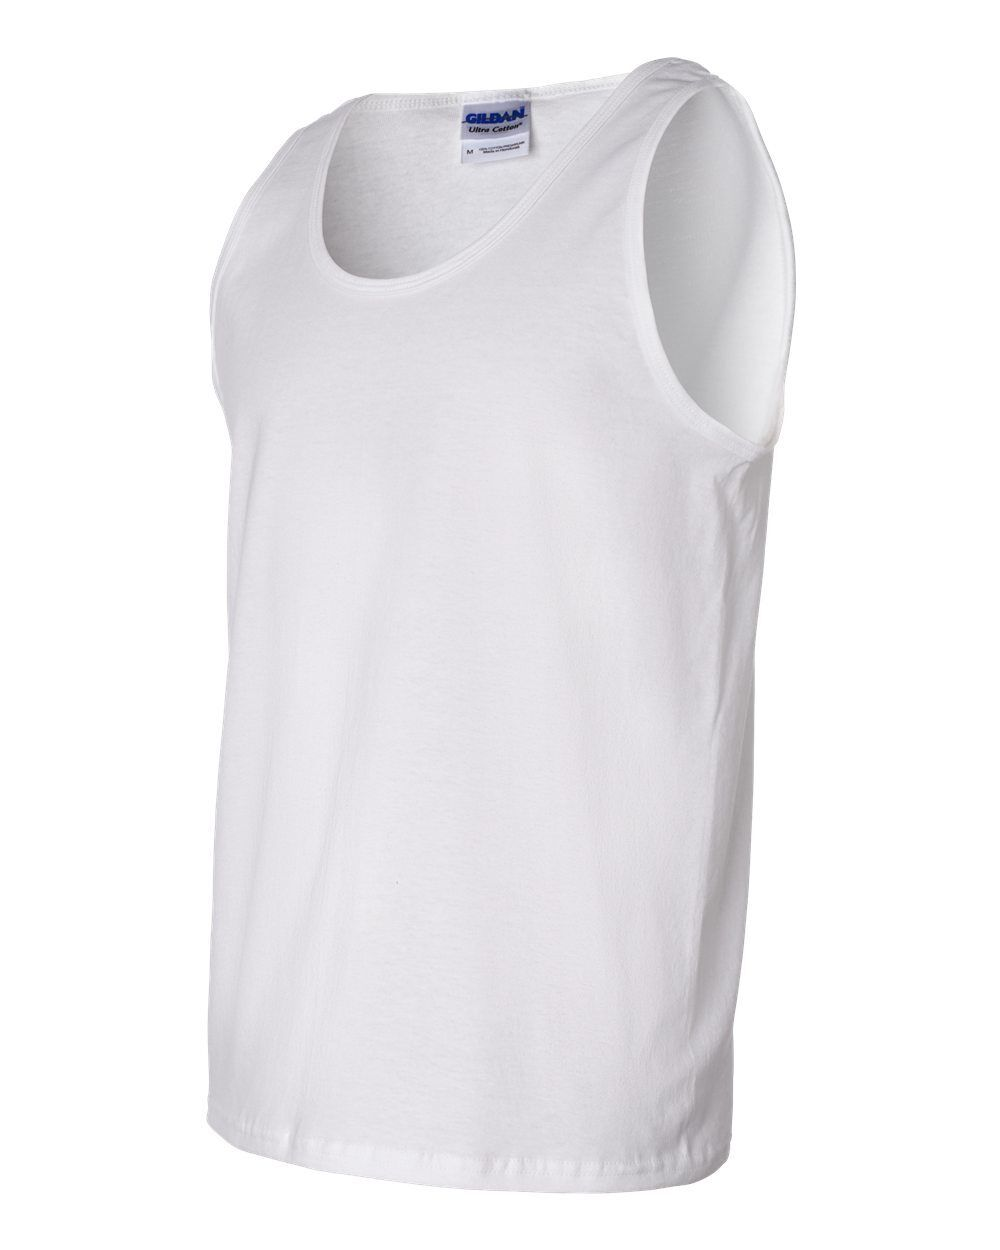 15 Blank Gildan Ultra Cotton Weiß Tank Top 2200 T-Shirt Bulk Lot ok to mix S-XL